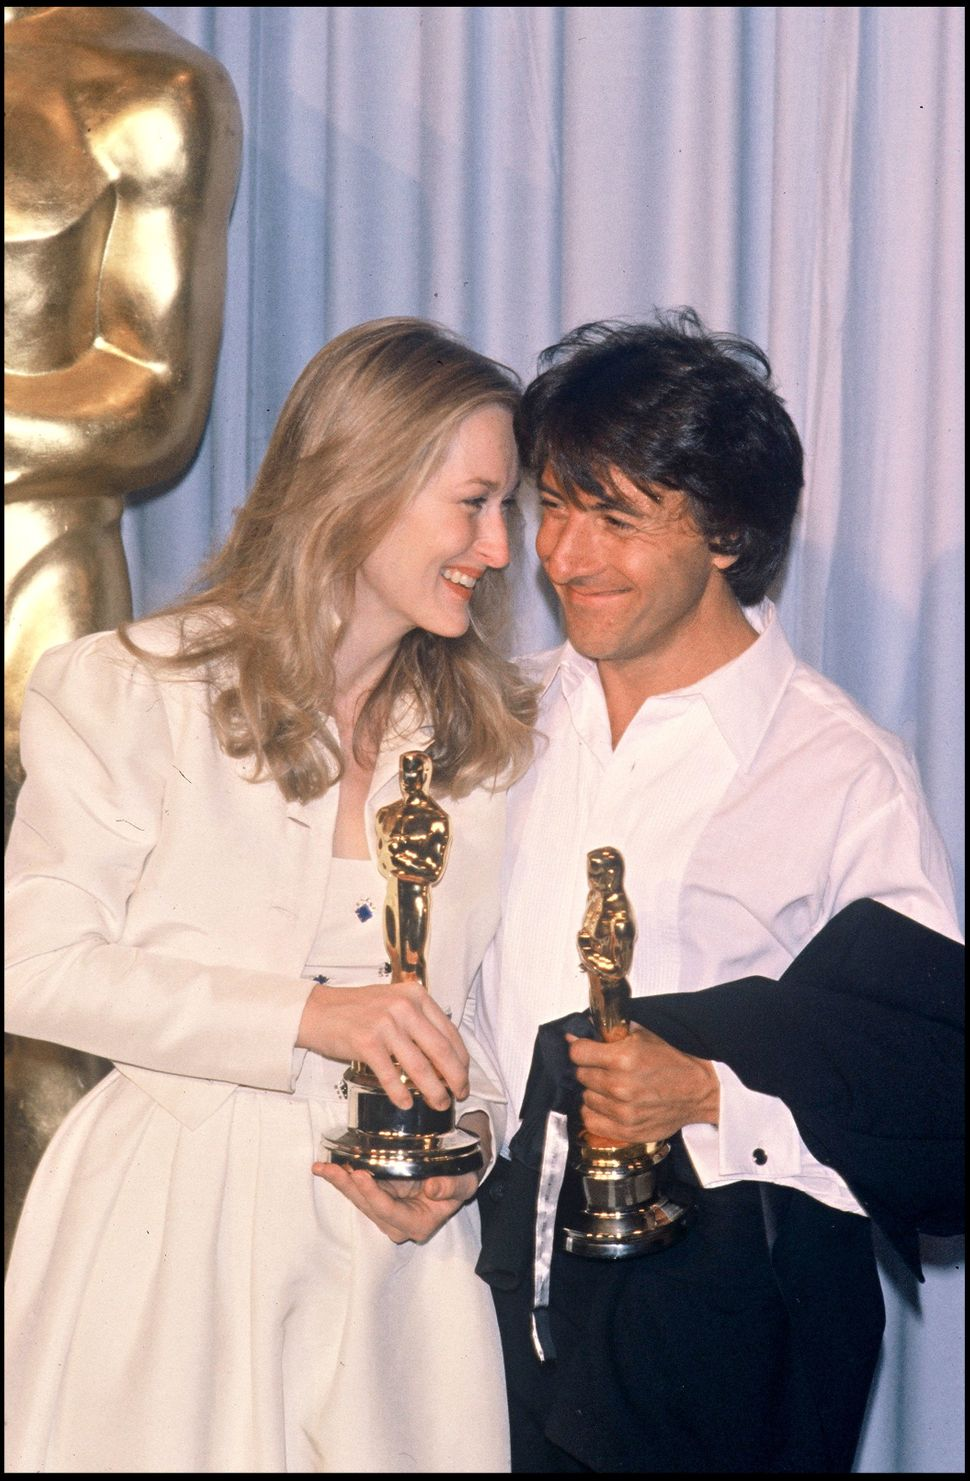 Meryl Streep and Dustin Hoffman celebrate their wins at the 52nd annual Academy Awards in 1980.